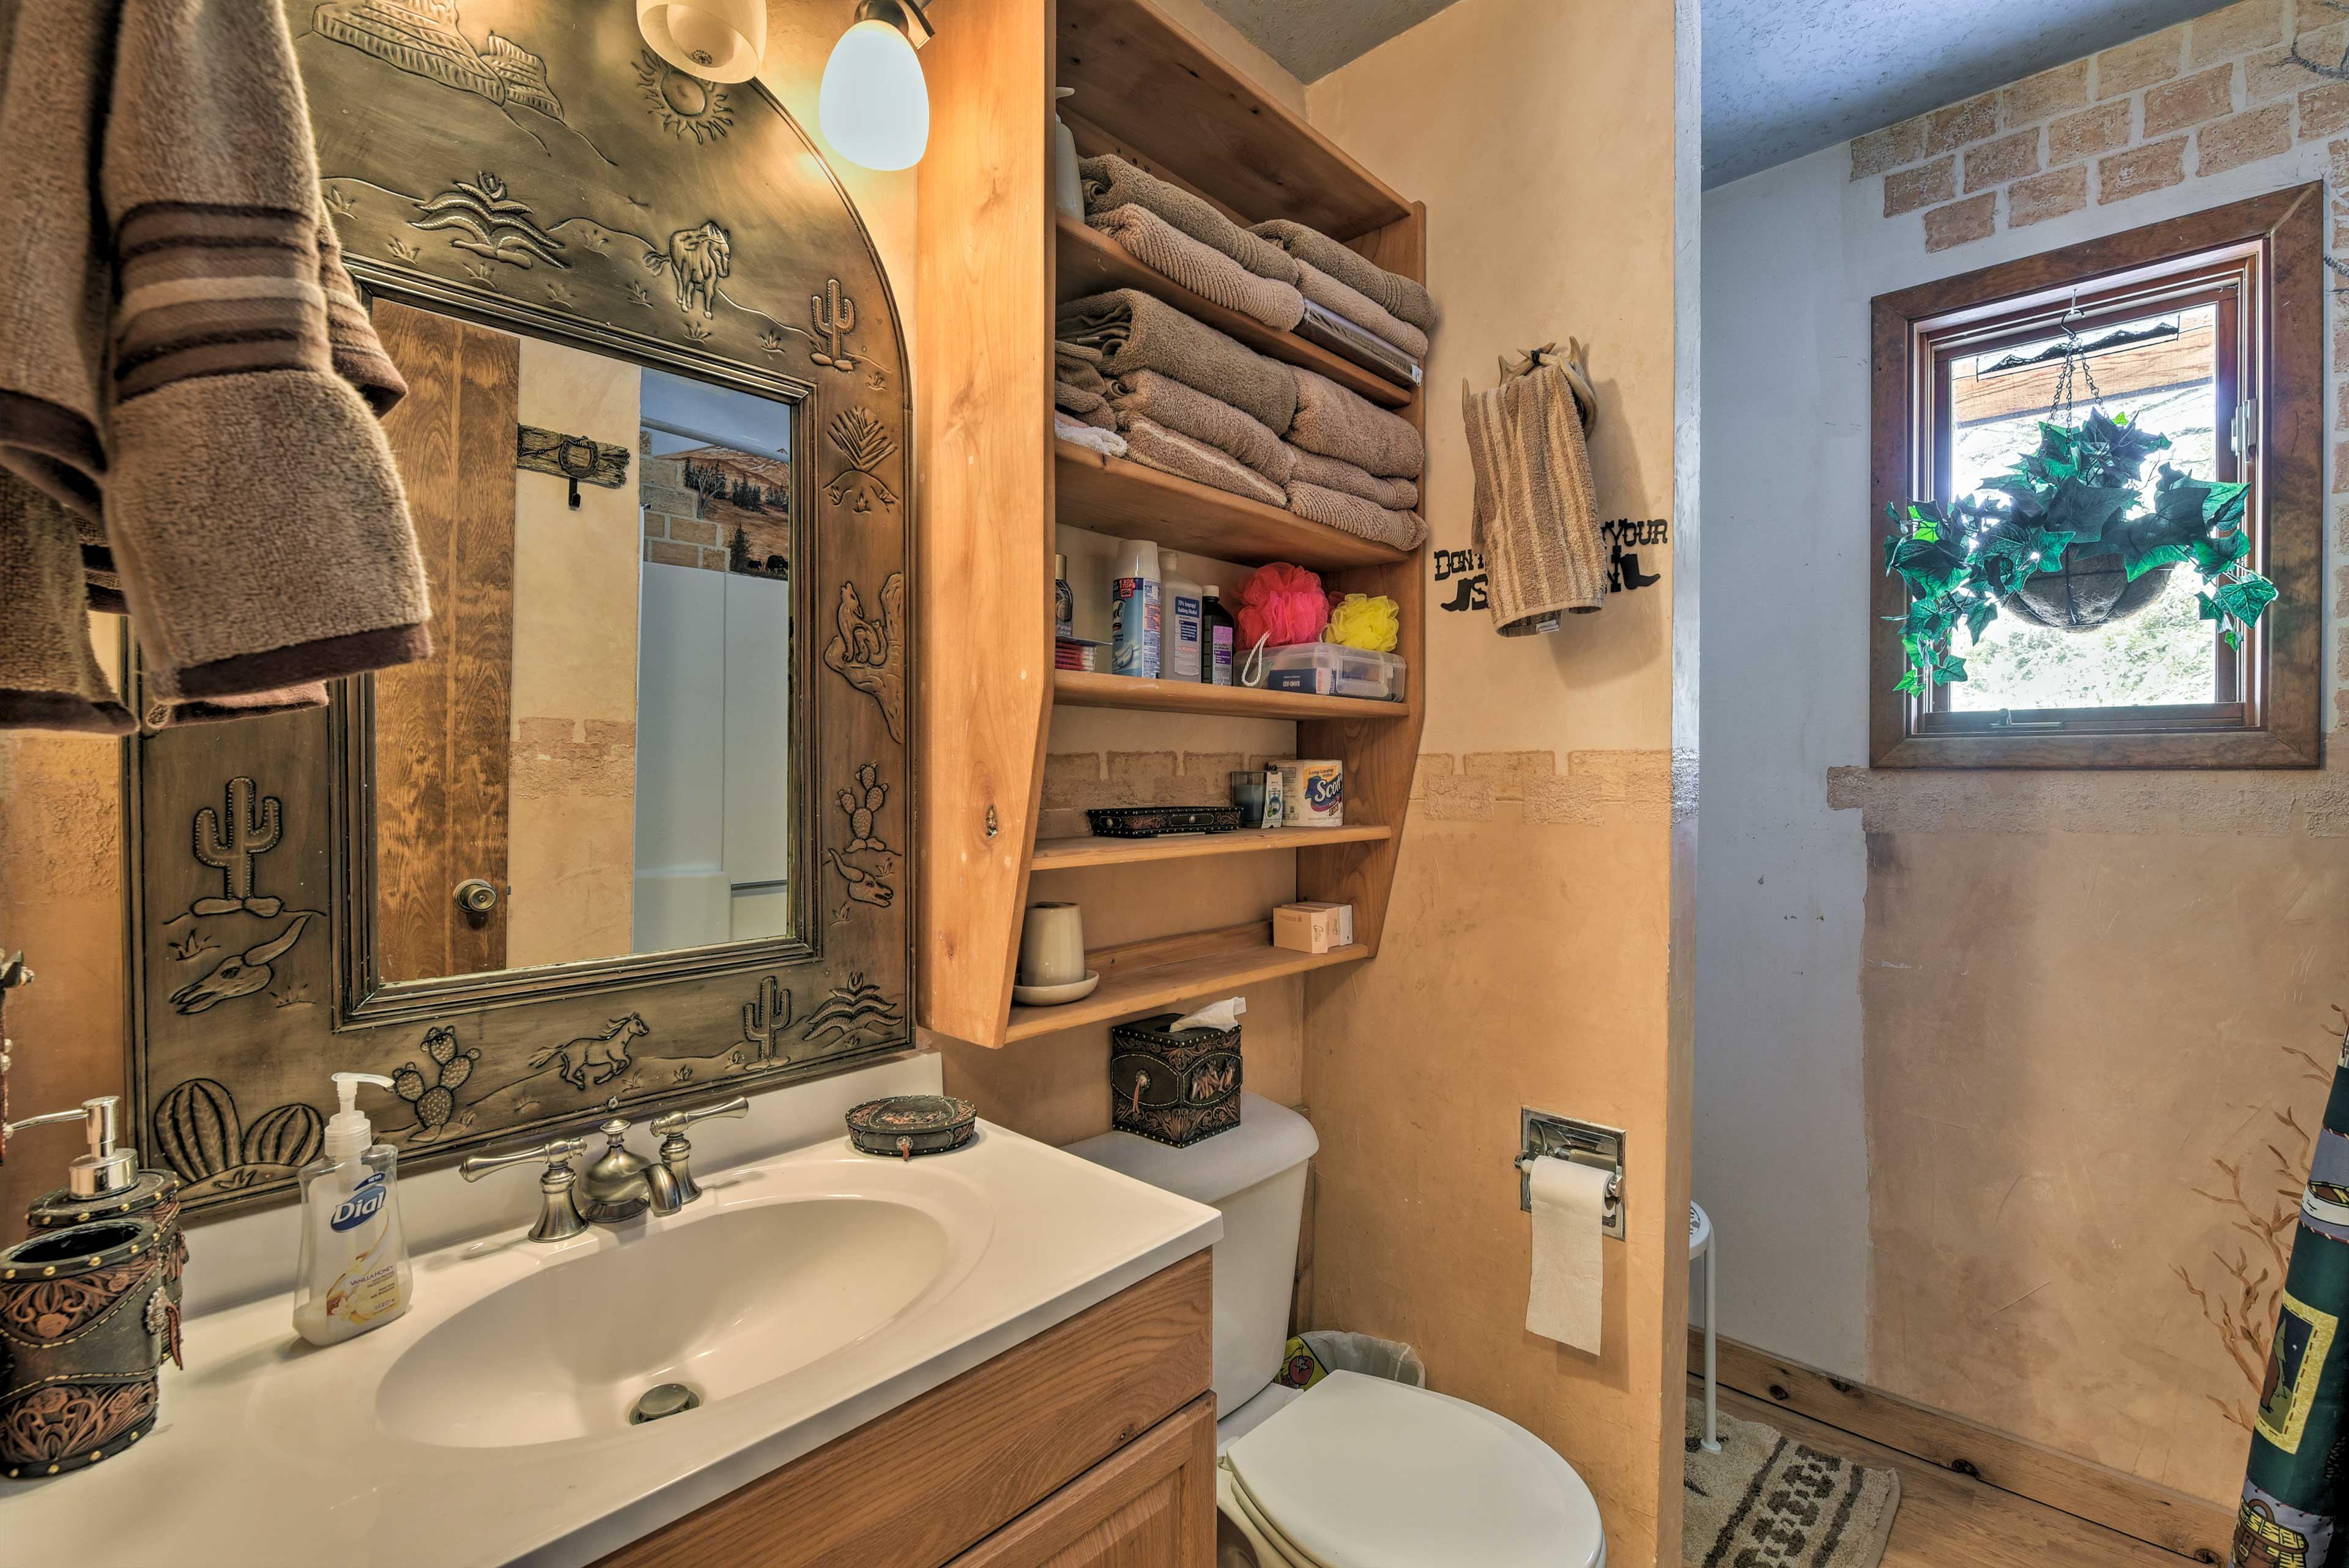 The home's full bathroom is complete with freshly laundered towels for everyone.